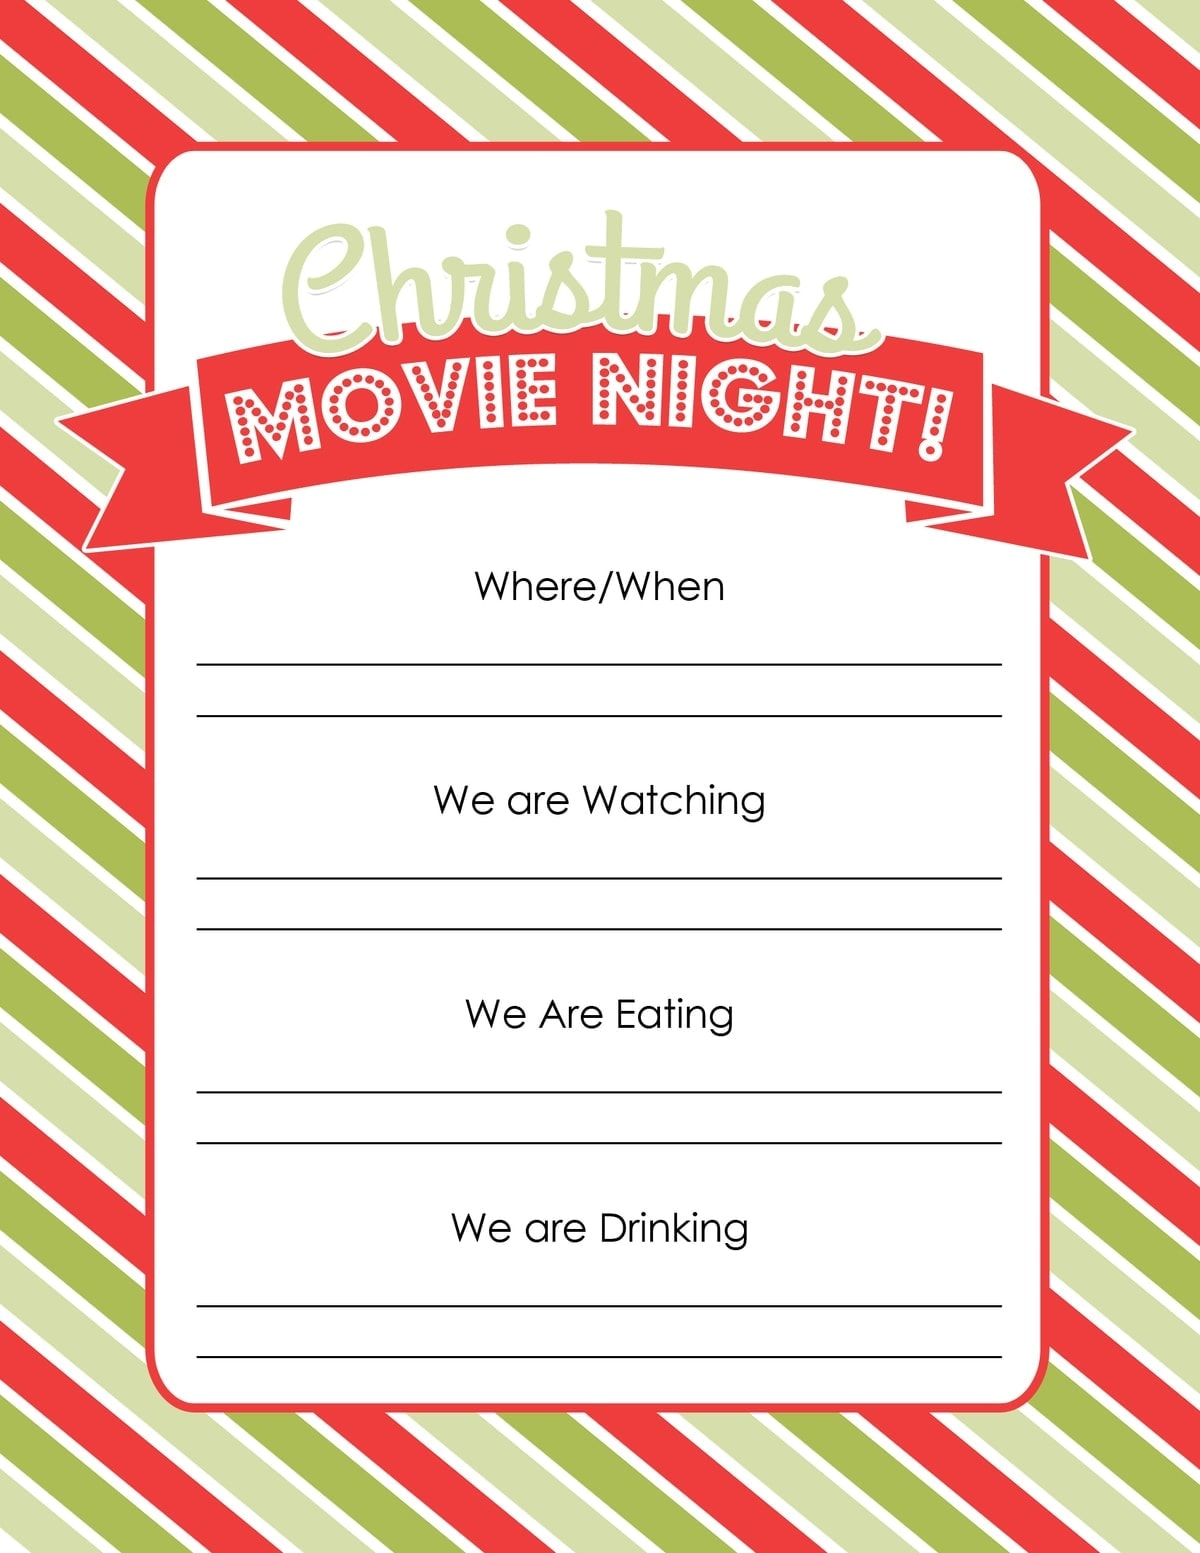 Christmas Movie Night with Free Printables (Best Christmas Movies)